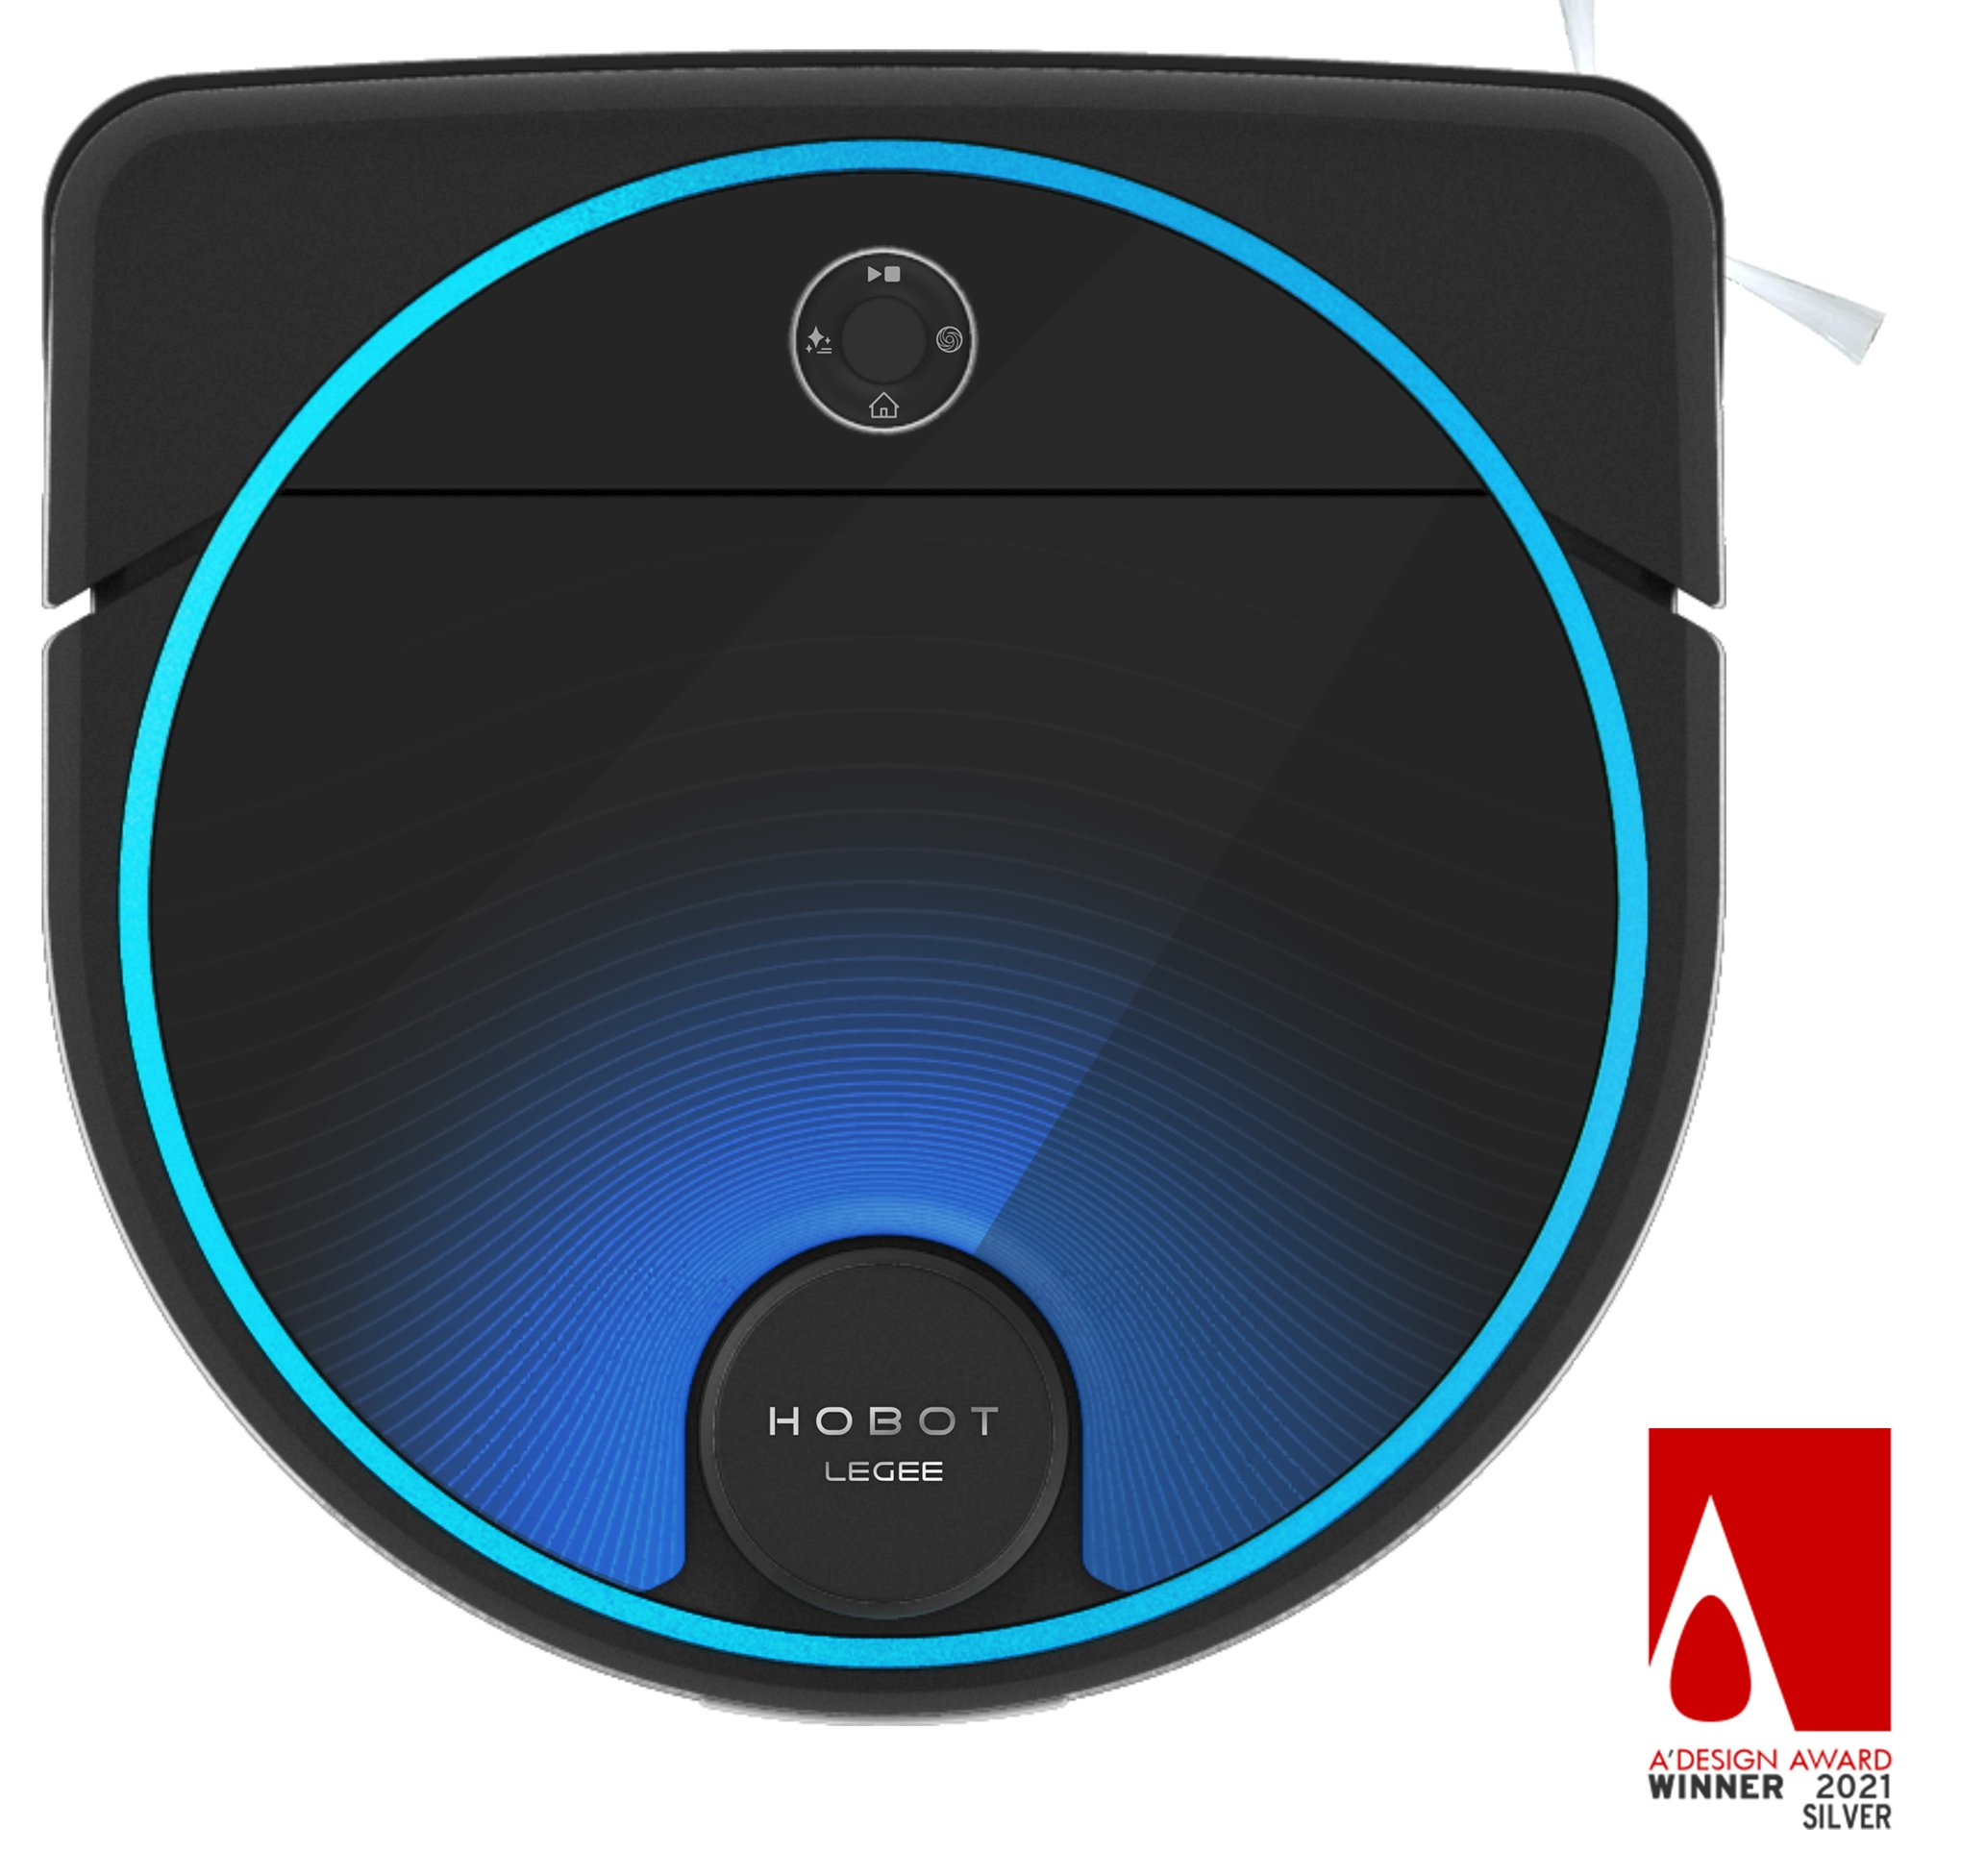 HOBOT LEGEE 7 Vacuum-Mop 4 in 1 Robot with Wifi Connectivity